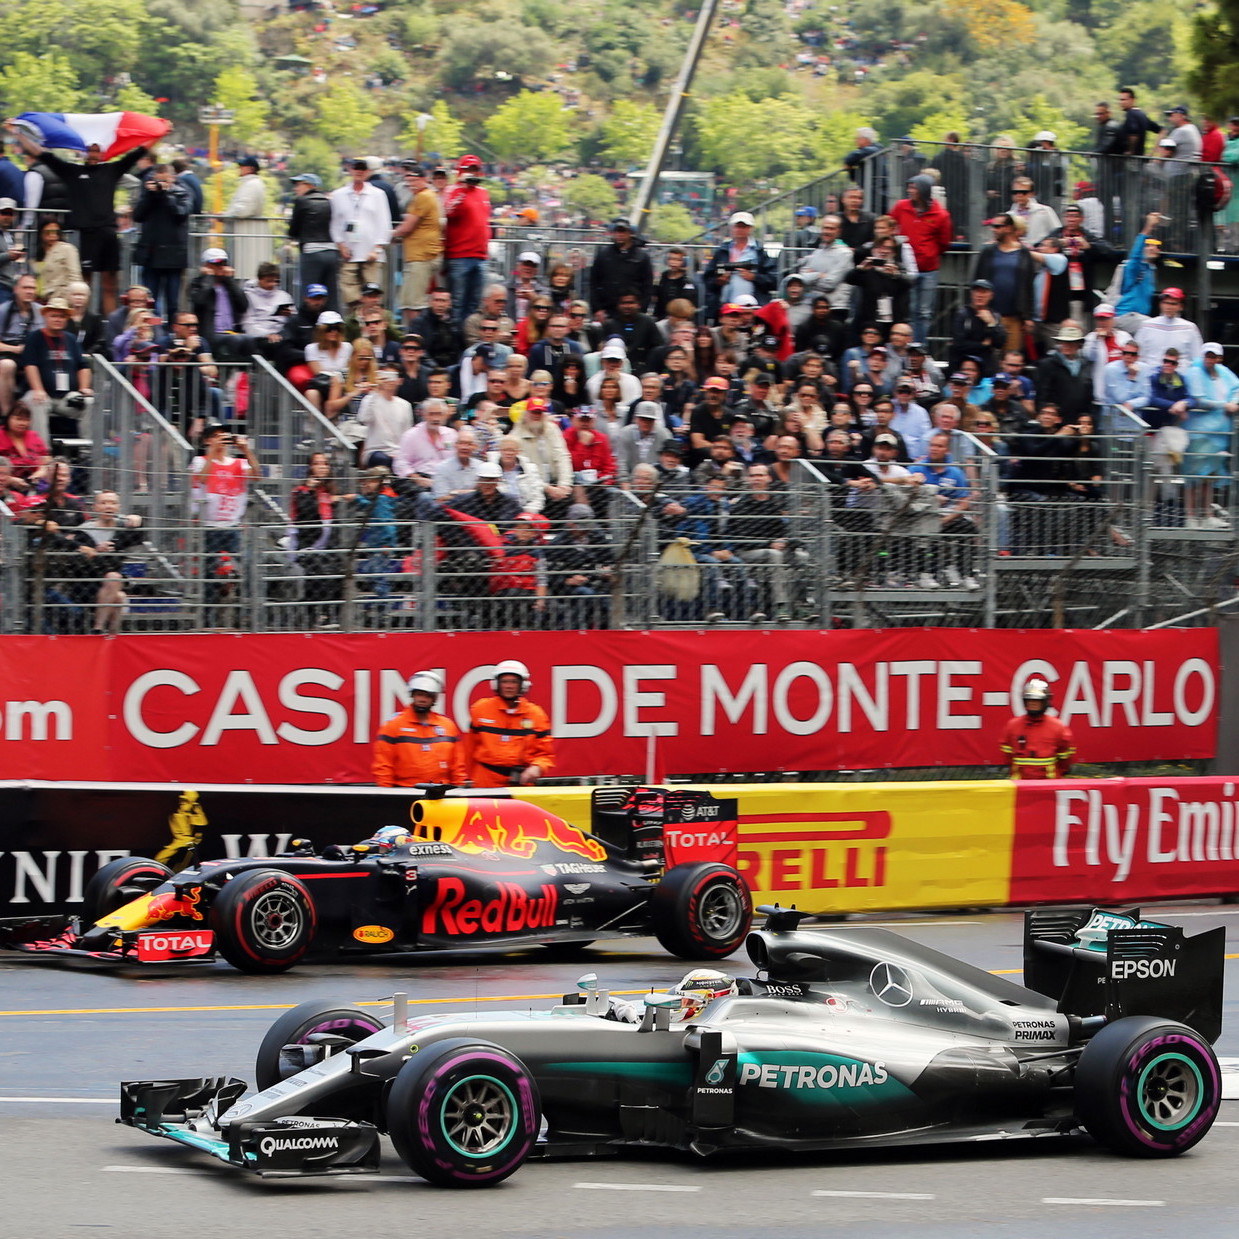 Monte Carlo Tickets and Hospitality